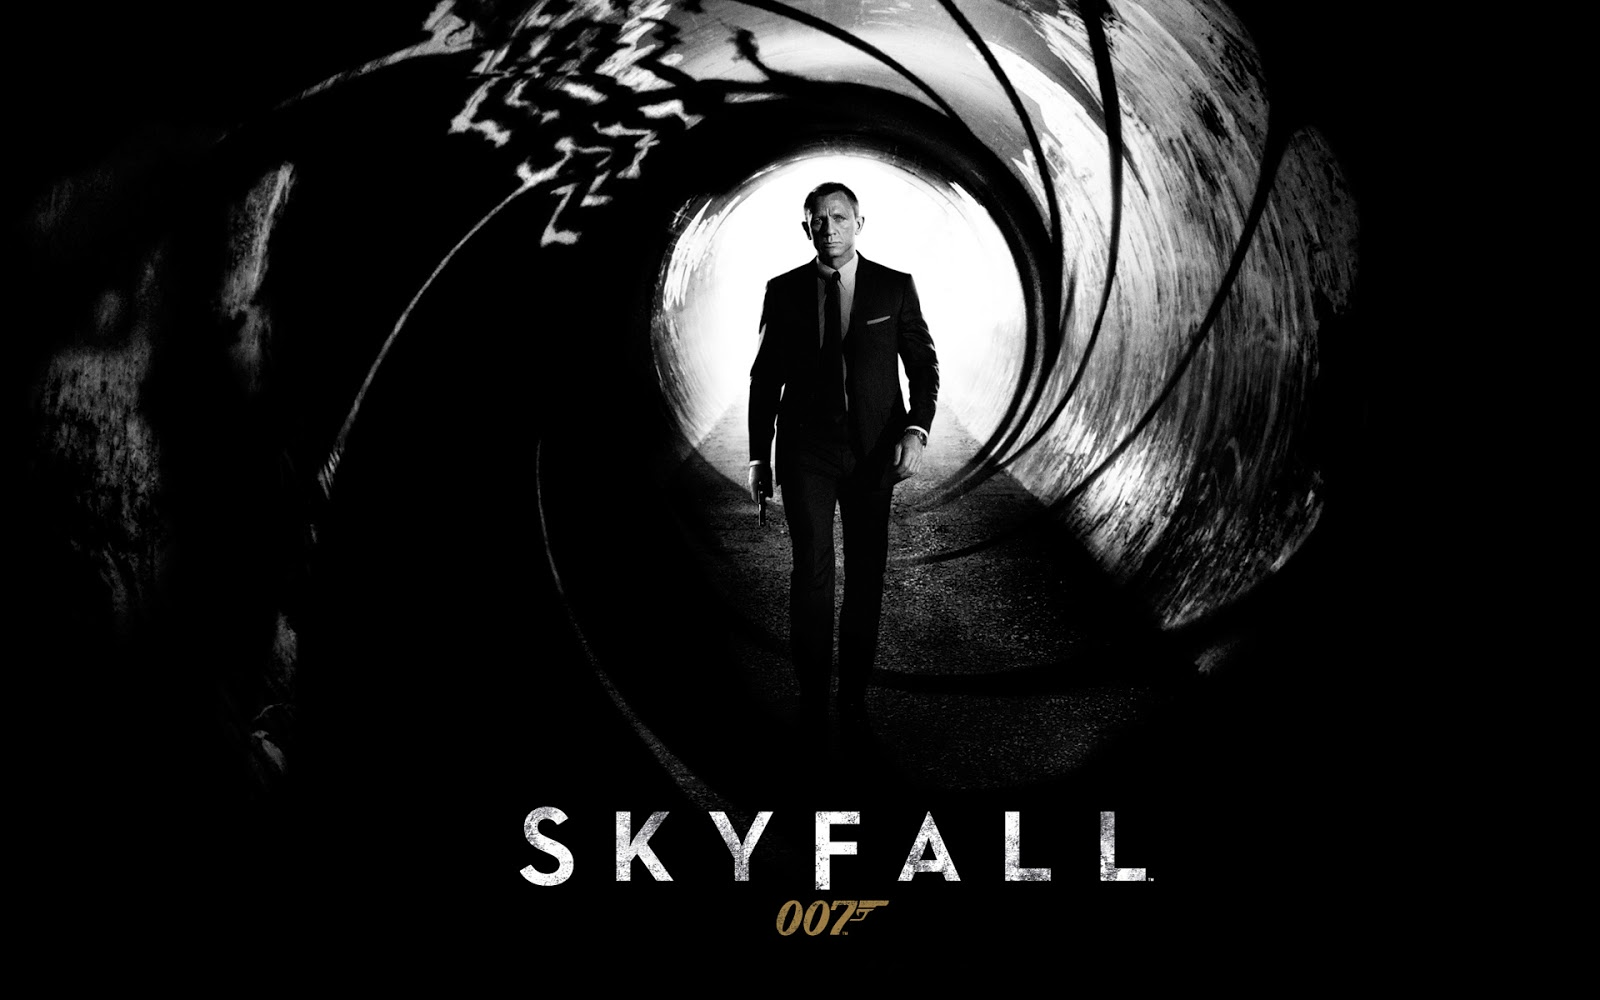 James Bond's 'Skyfall' breaks $1 billion